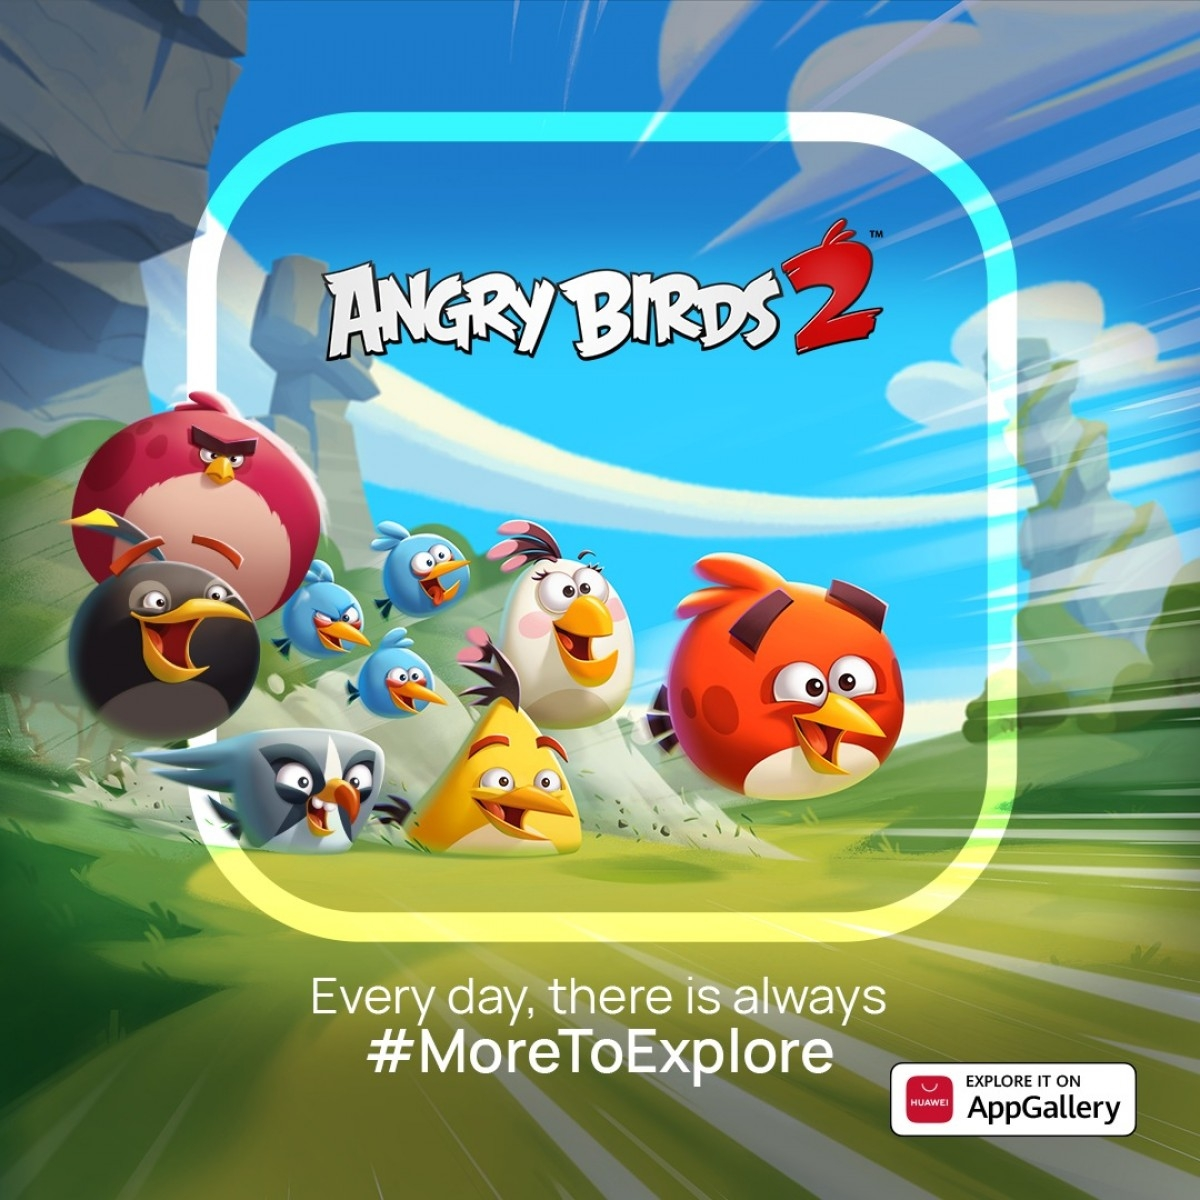 Angry birds 2 arrives on Appgallery